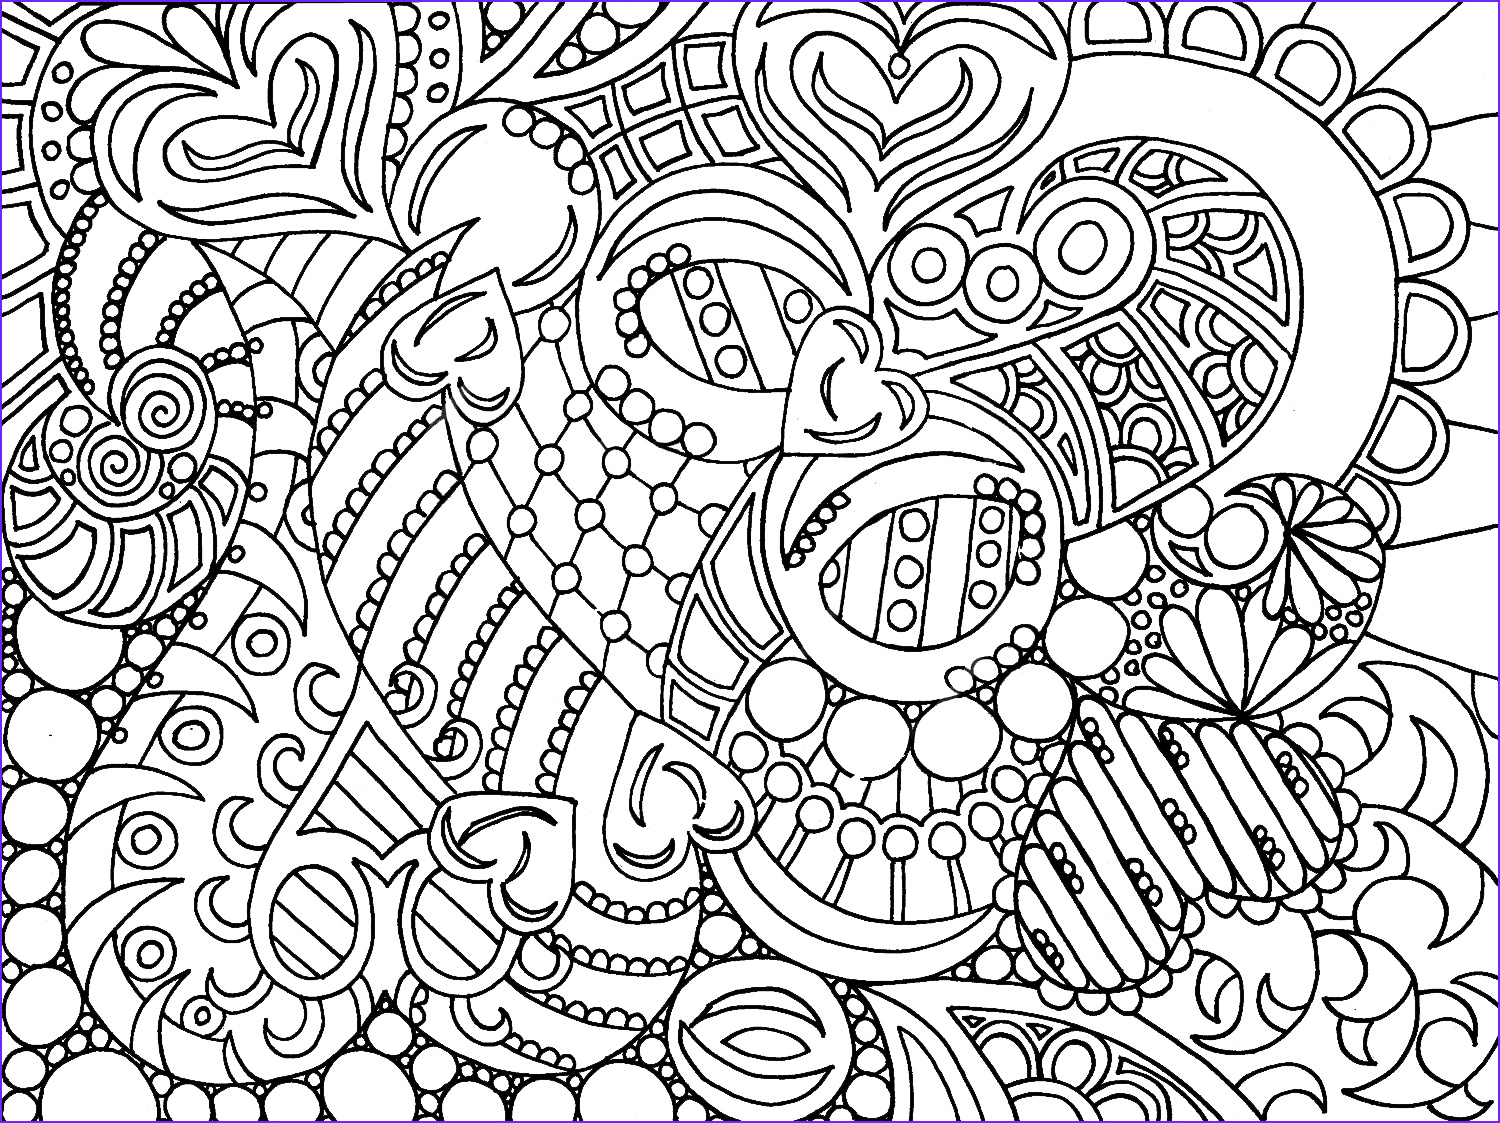 Adult Coloring Pages Printable New Photos Free Coloring Pages for Adults